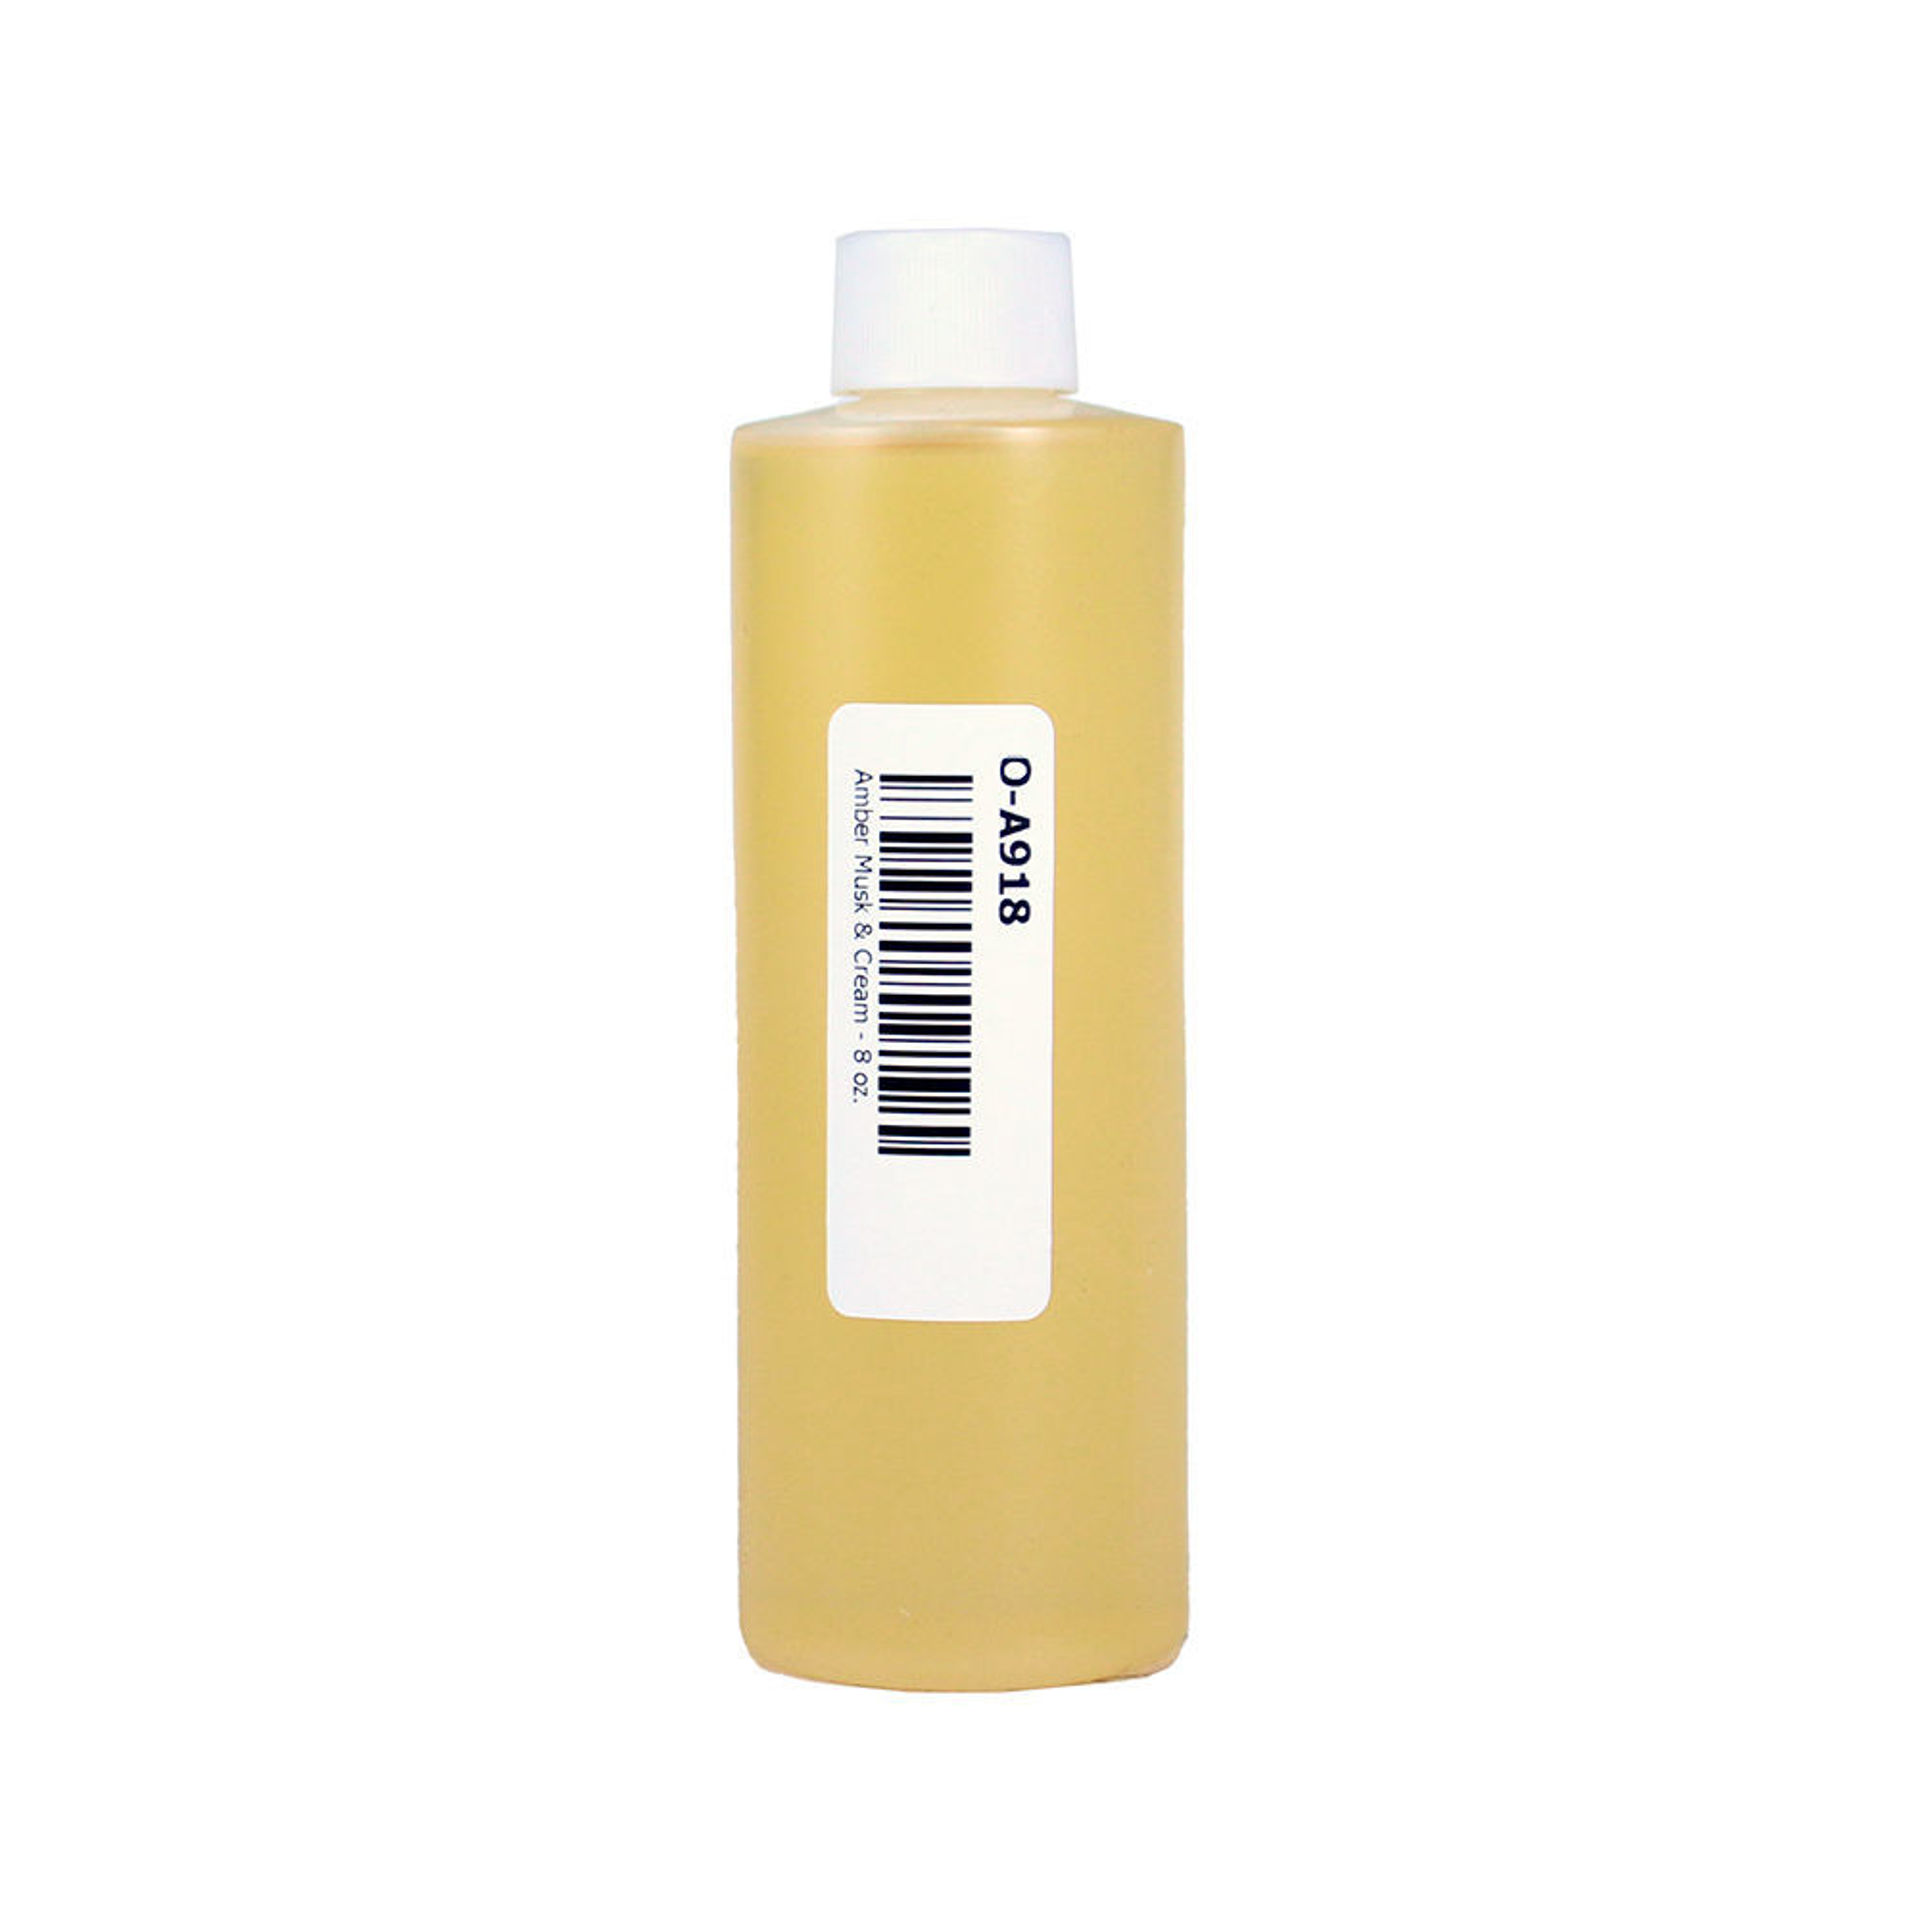 Picture of Amber Musk & Cream - 8 oz.